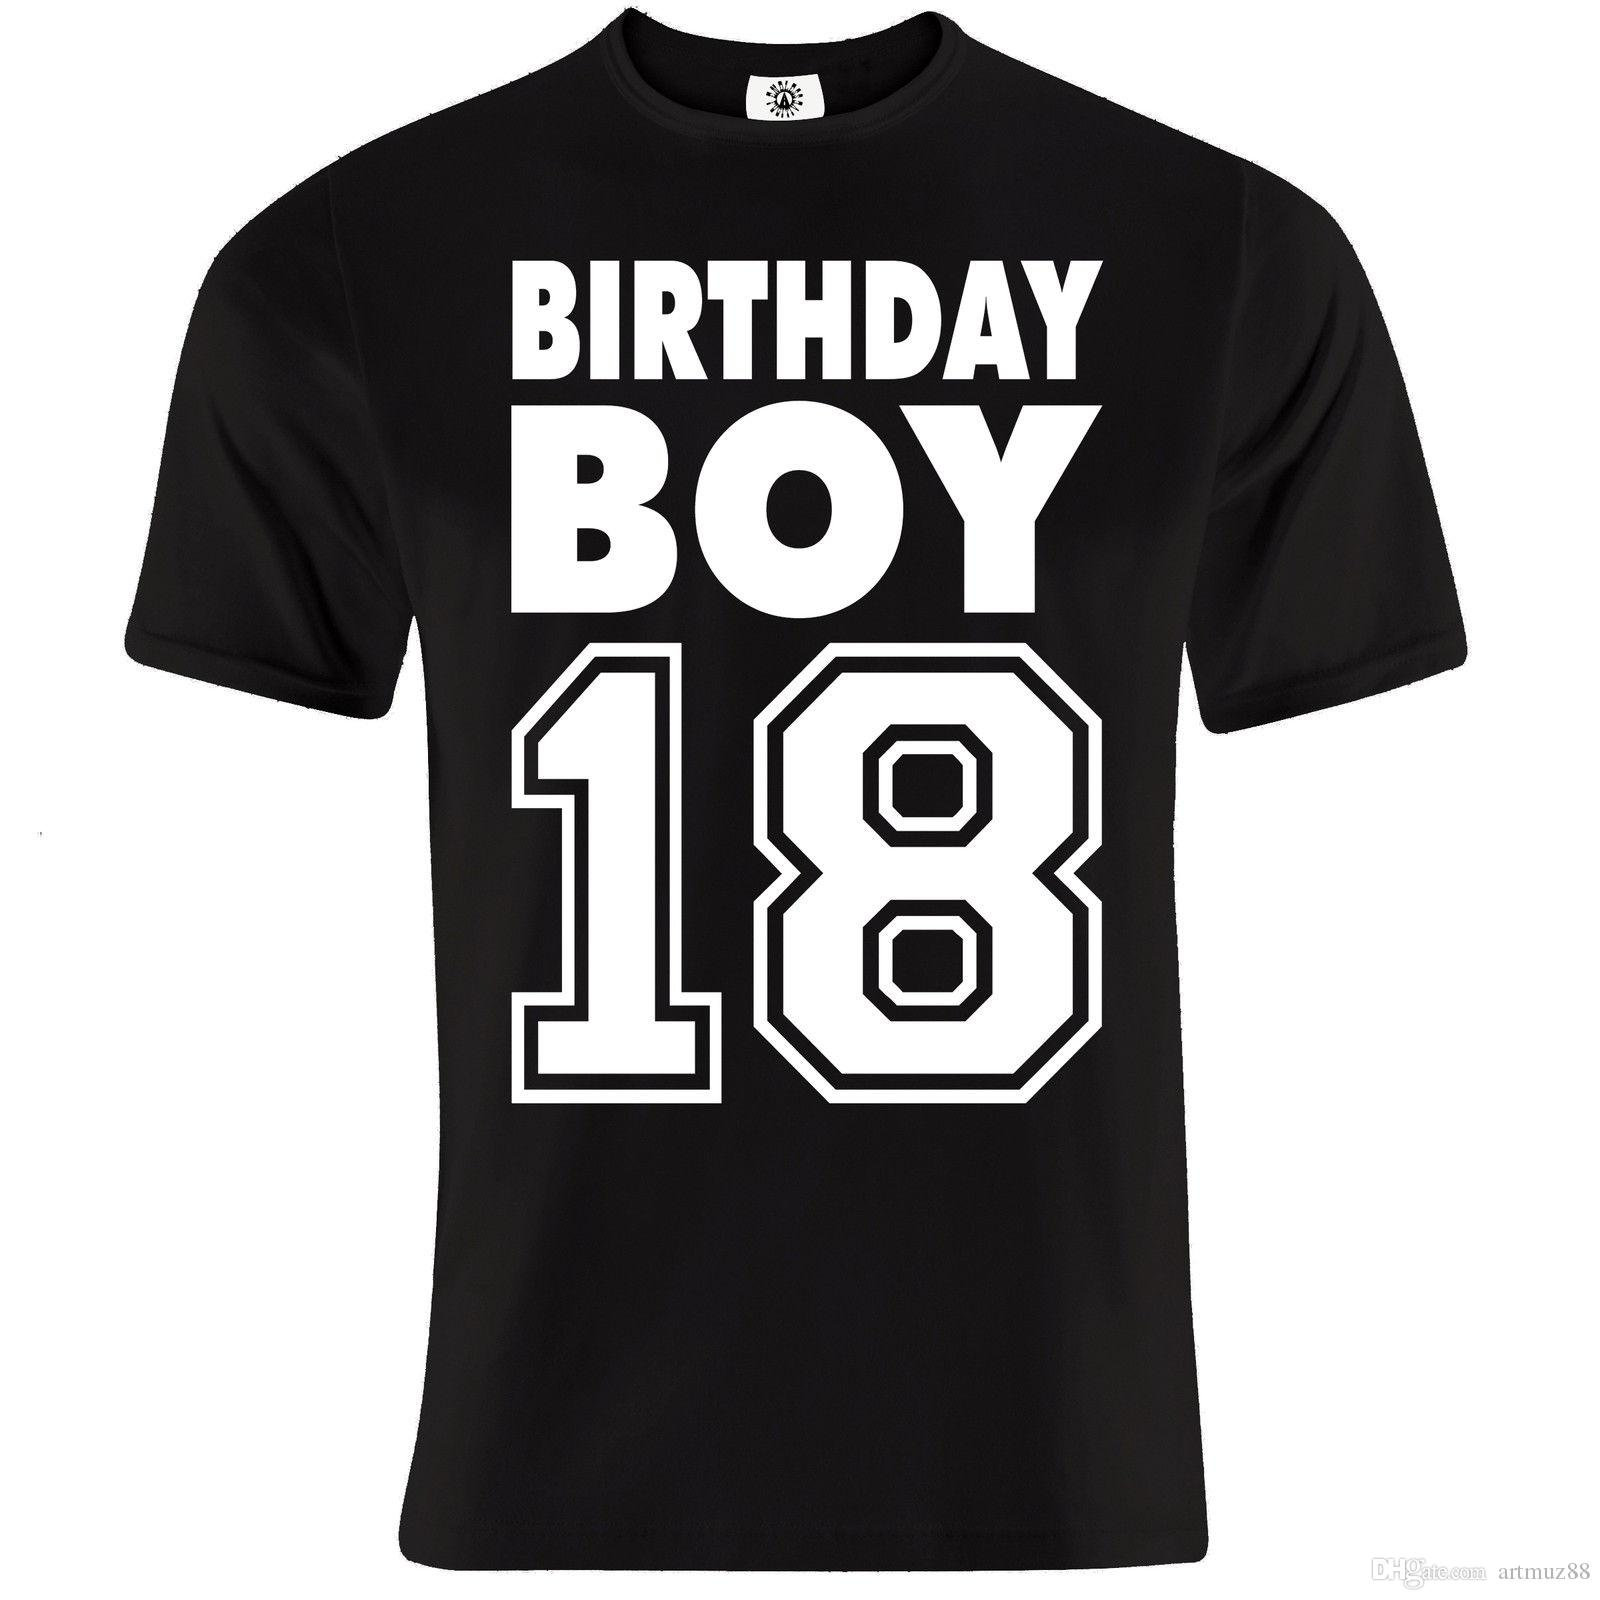 Mens Significant 18th To 50th Birthday Coming Of Age Gift Celebration T Shirt Quality Shirts Slogans From Artmuz88 1076